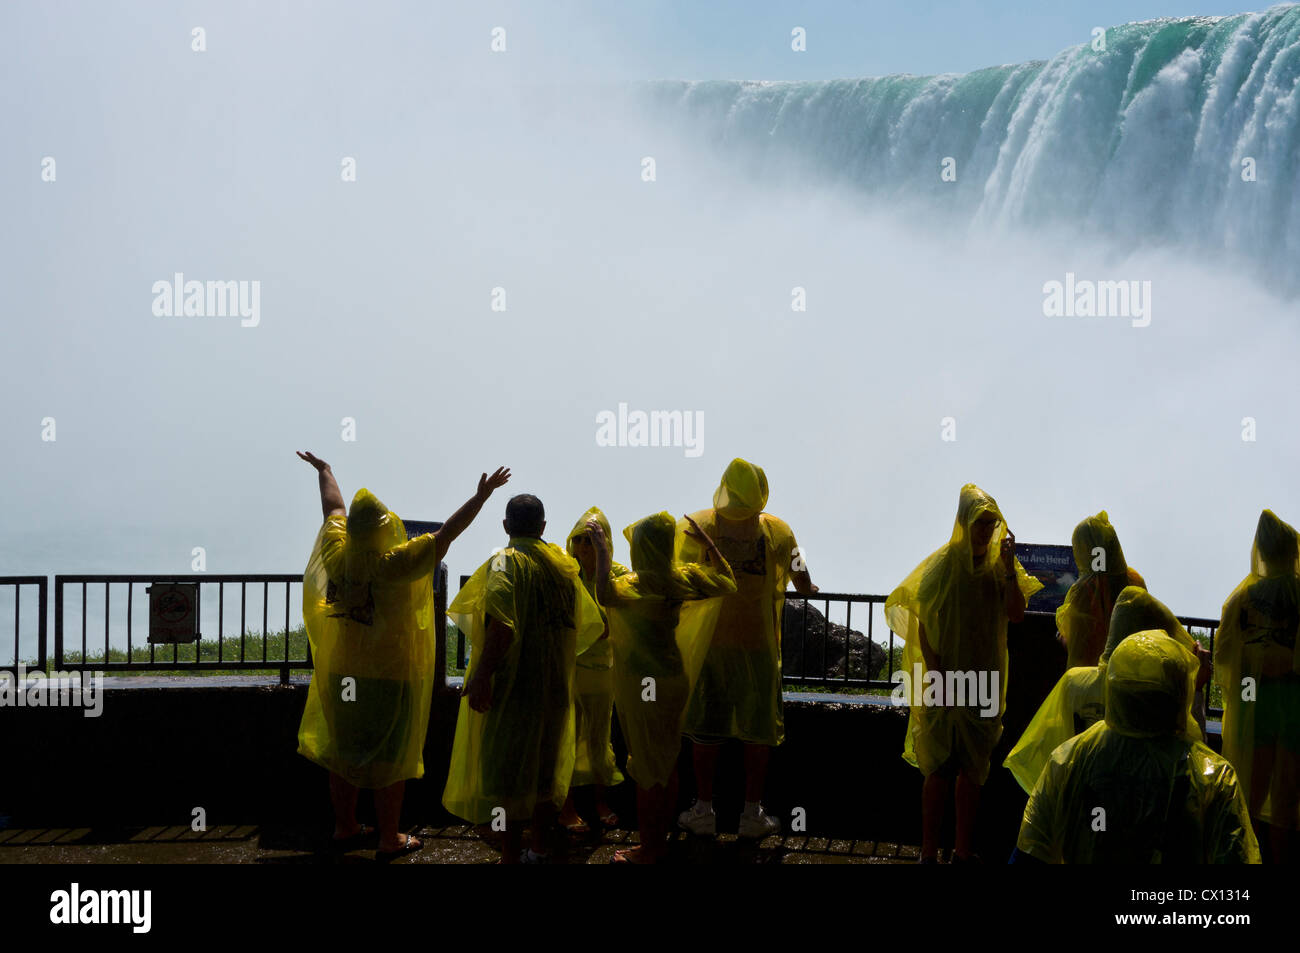 Tourists dressed in yellow waterproof ponchos on the viewing platform at the base of Niagara Falls, Canada. - Stock Image